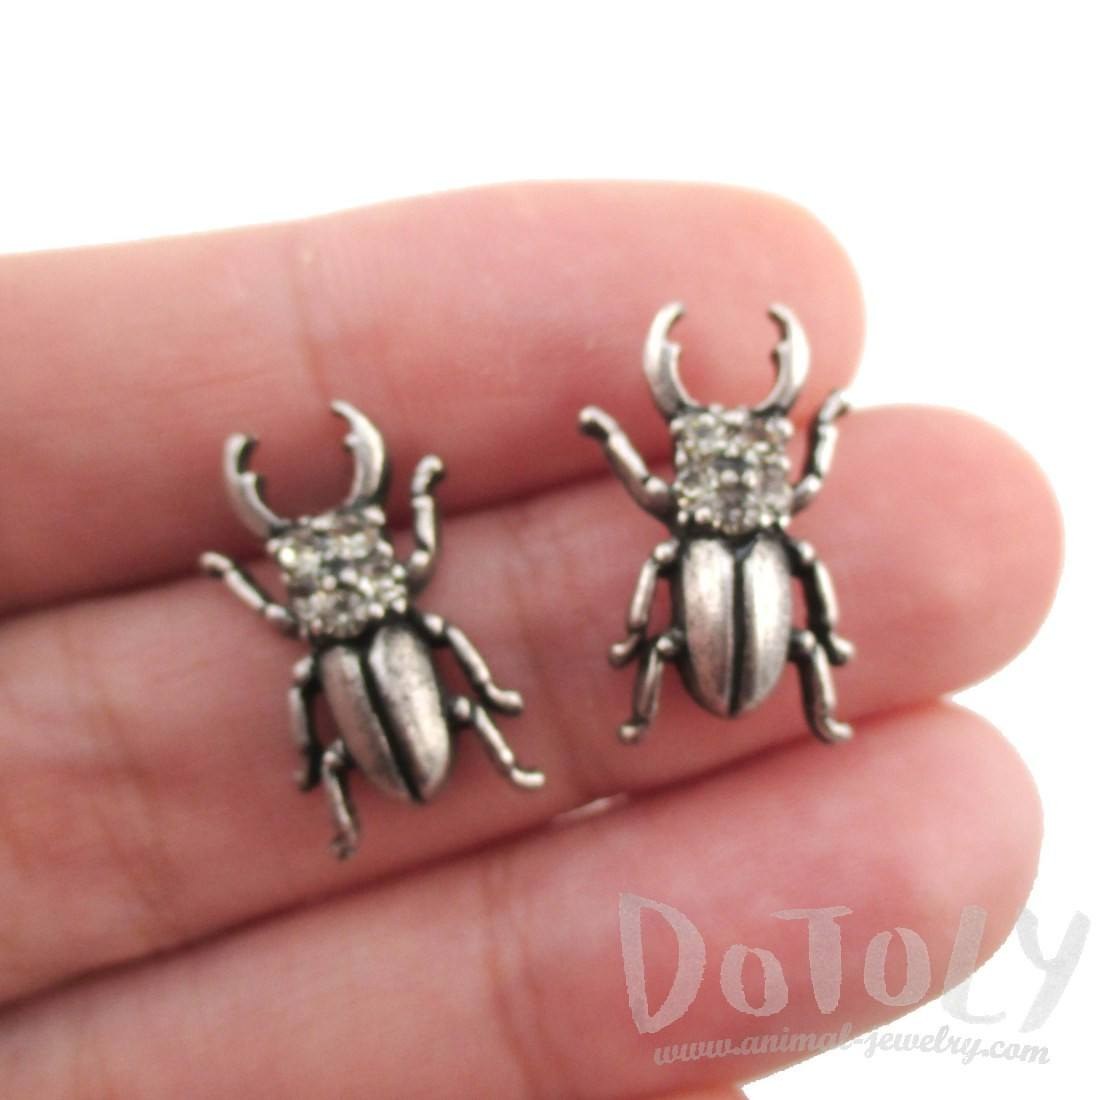 Stag Beetle with Pincers Shaped Rhinestone Stud Earrings in Silver